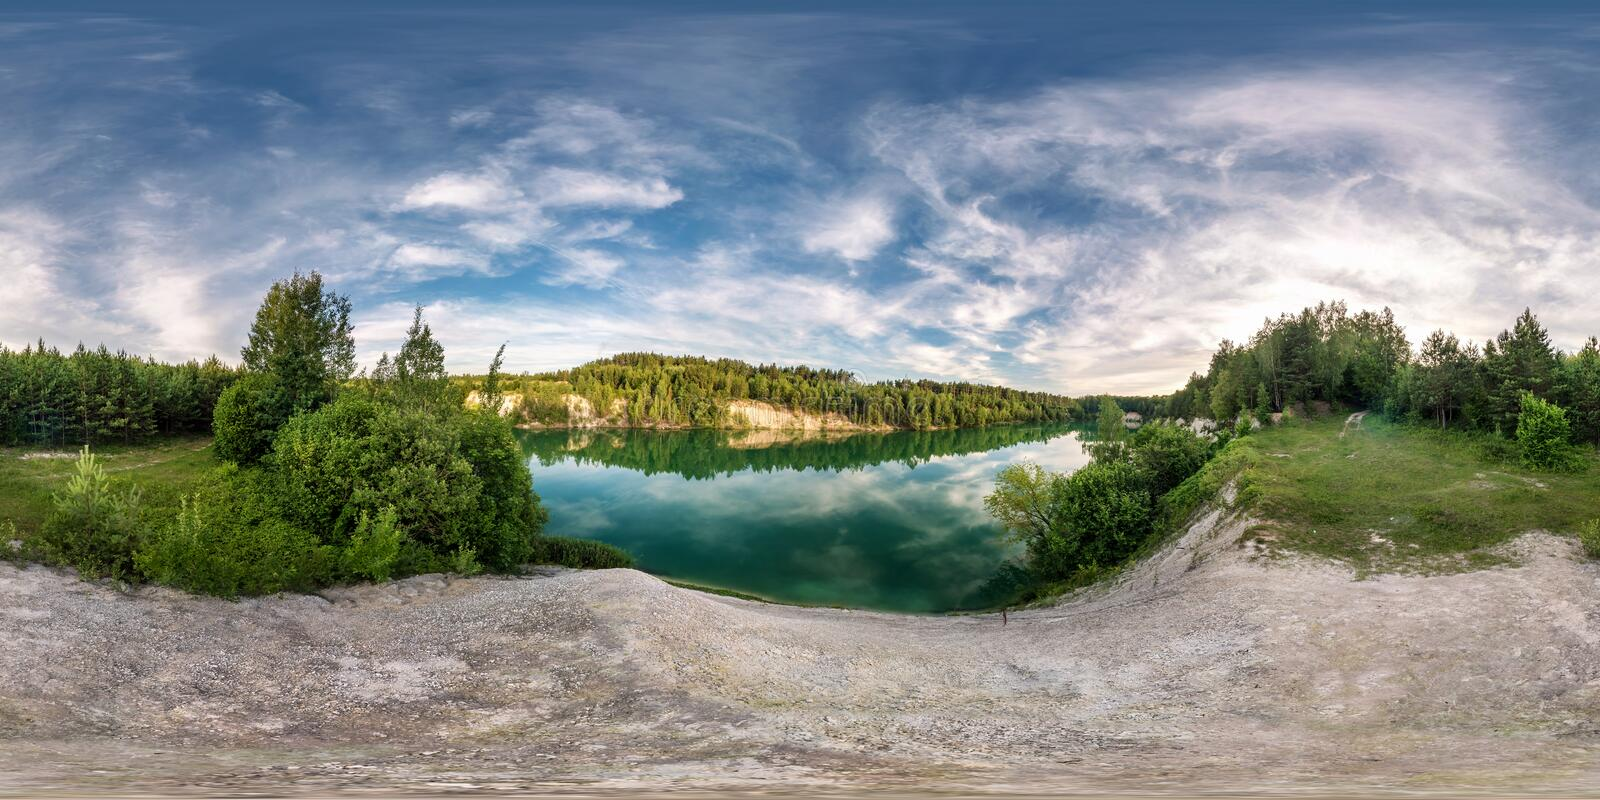 Full seamless spherical hdri panorama 360 degrees angle view on limestone coast of huge green lake or river near forest in summer stock image